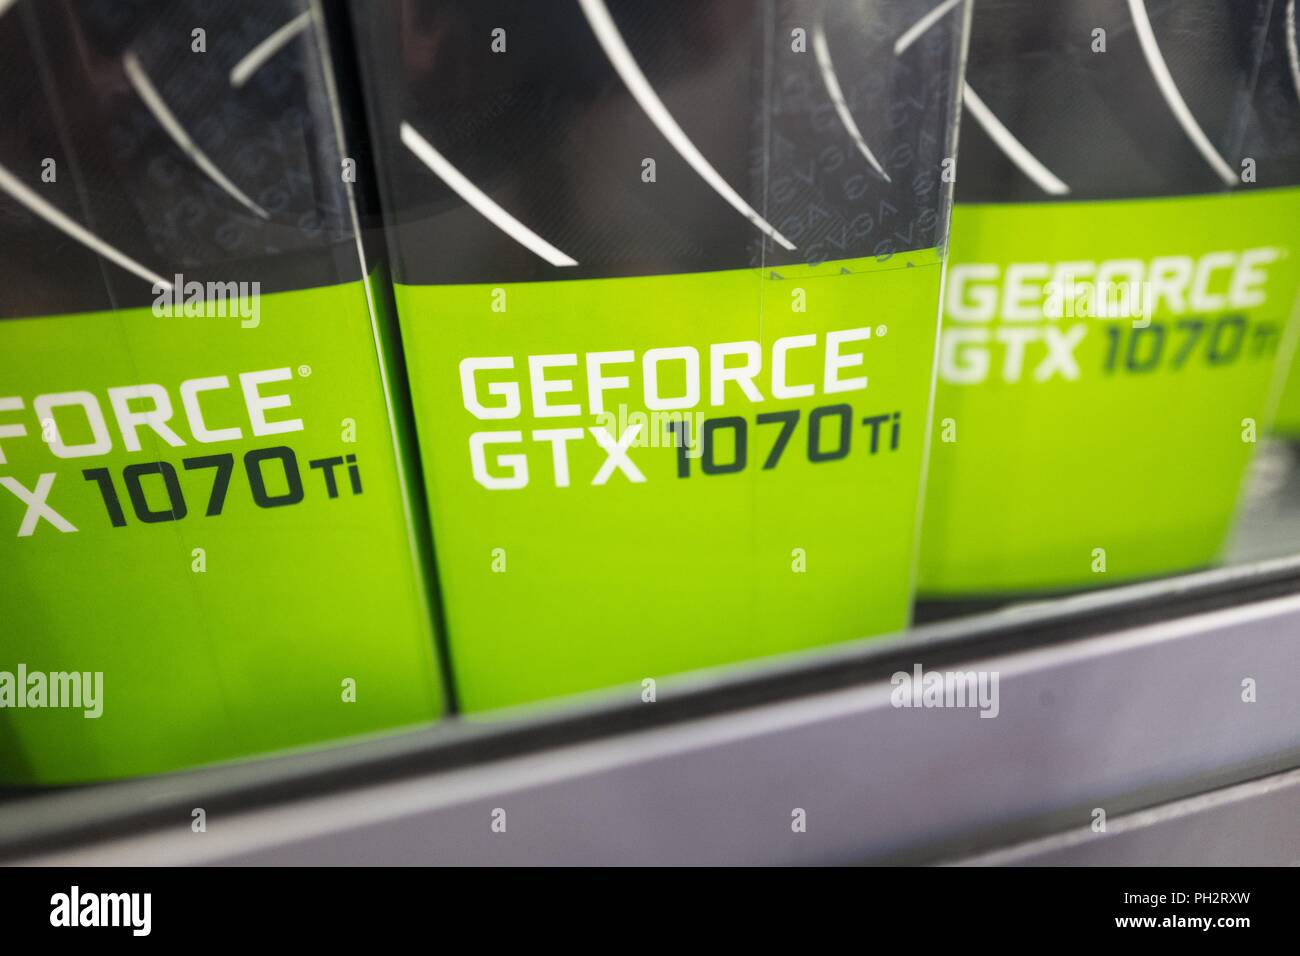 Close-up of a line of new NVIDIA GeForce graphical processing units (GPUs) in boxes, commonly used in cryptocurrency mining for Bitcoin alternative coins such as Monero and Ethereum, Dublin, California, August 23, 2018. () - Stock Image